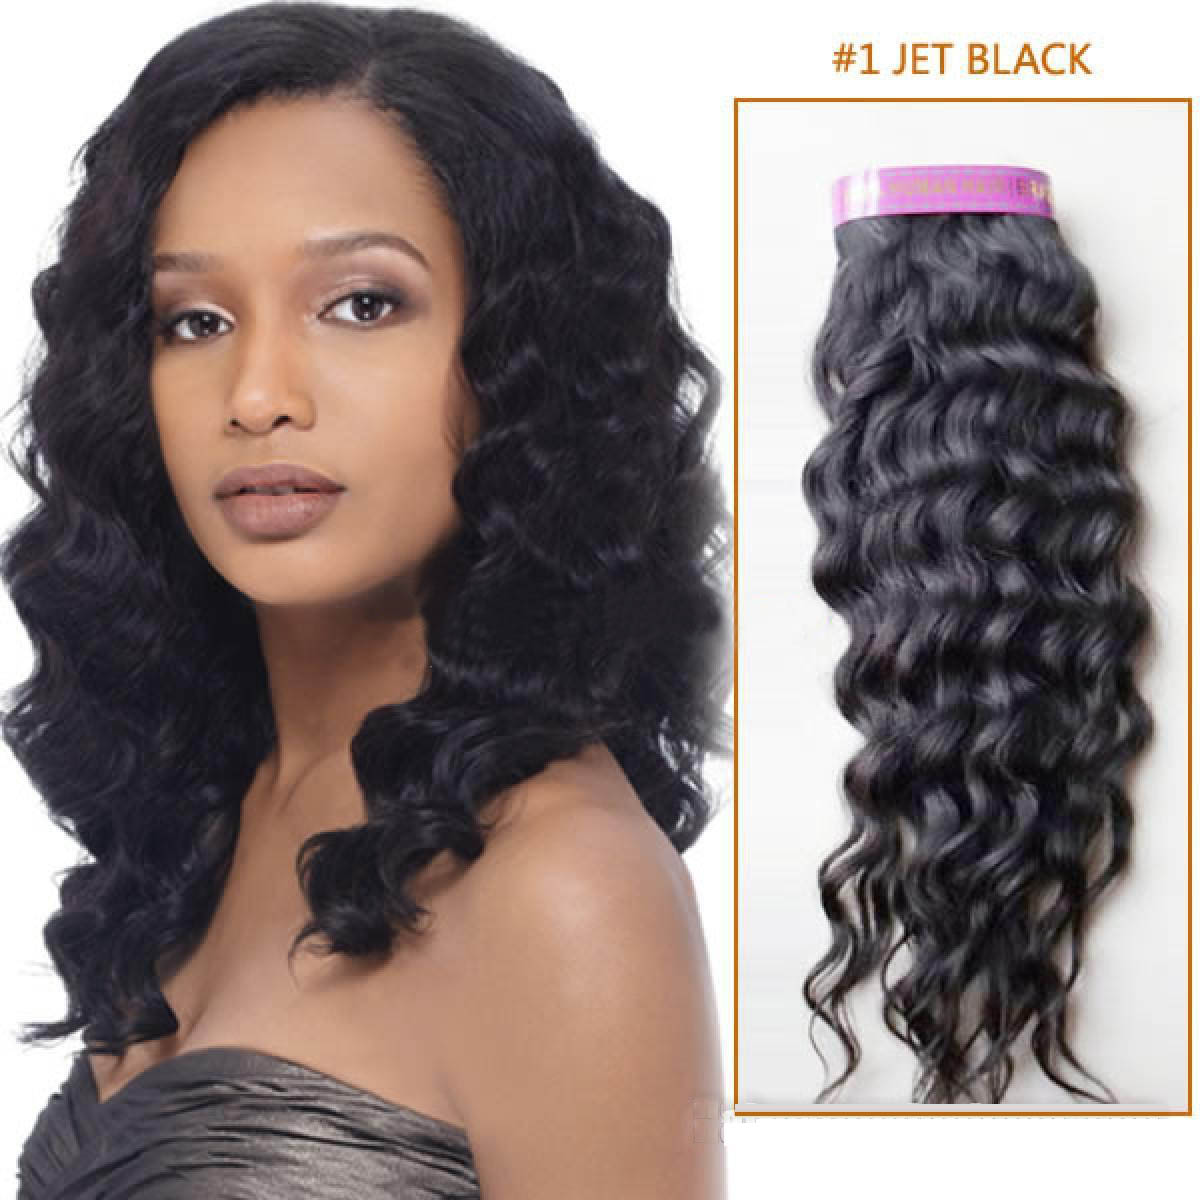 20 Inch 1 Jet Black Curly Indian Remy Hair Wefts